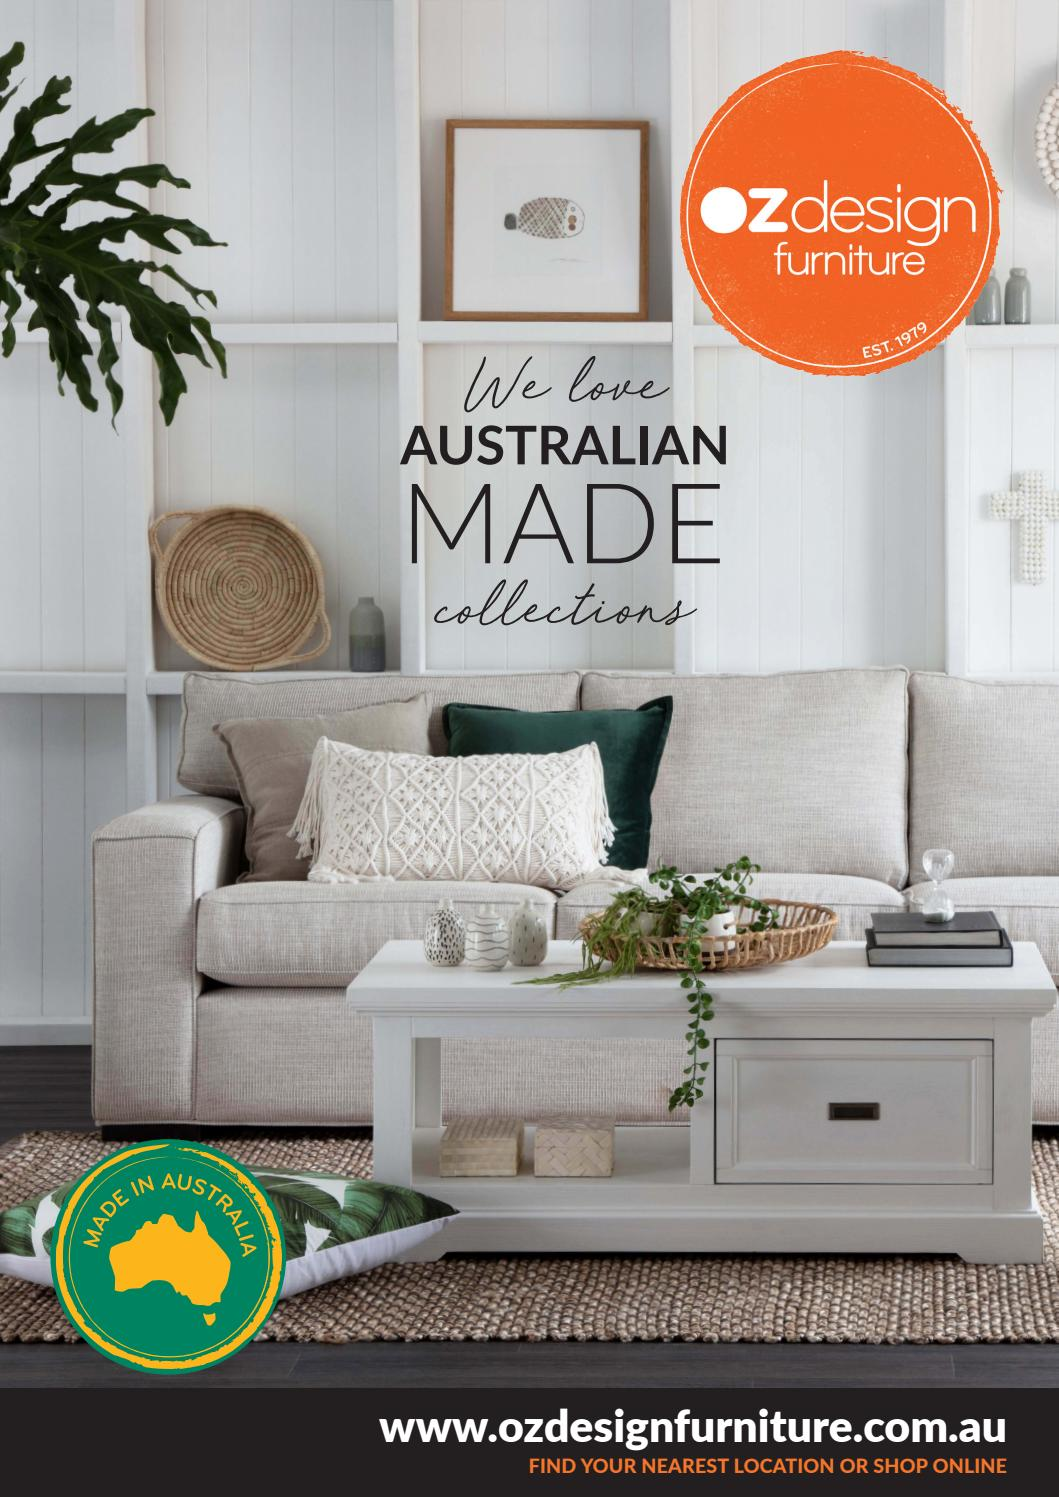 We love australian made collections oz design furniture by oz design furniture issuu